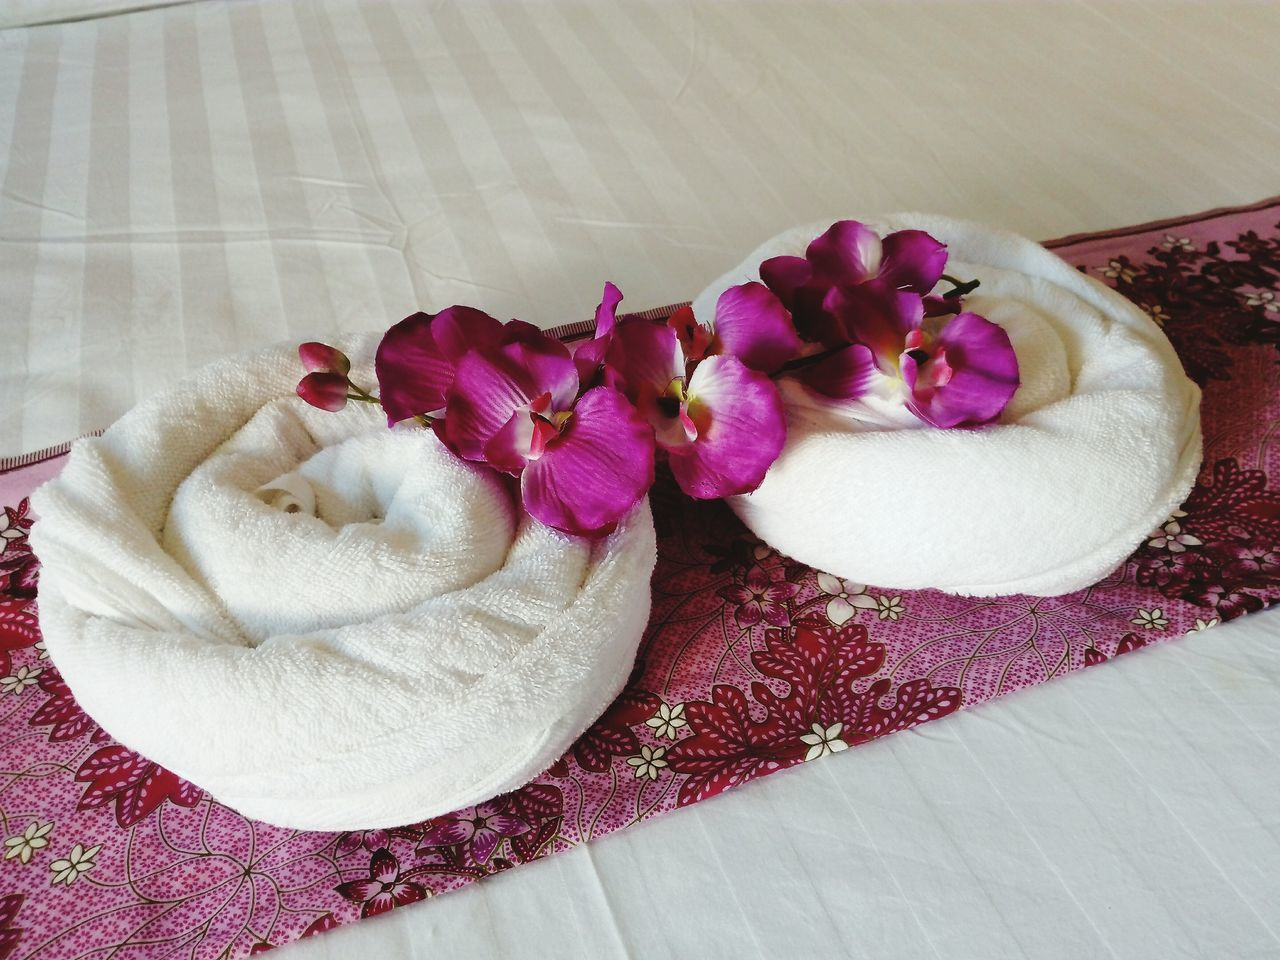 Towels & orchids Pink Color Flower Close-up Indoors  Freshness No People Beauty Flower Head Day Real People Hotel View Interior Towel Decor Decoration With Flowers Tourist Attraction  Kohlipe Sea Satun Province Thailand Honeymoon